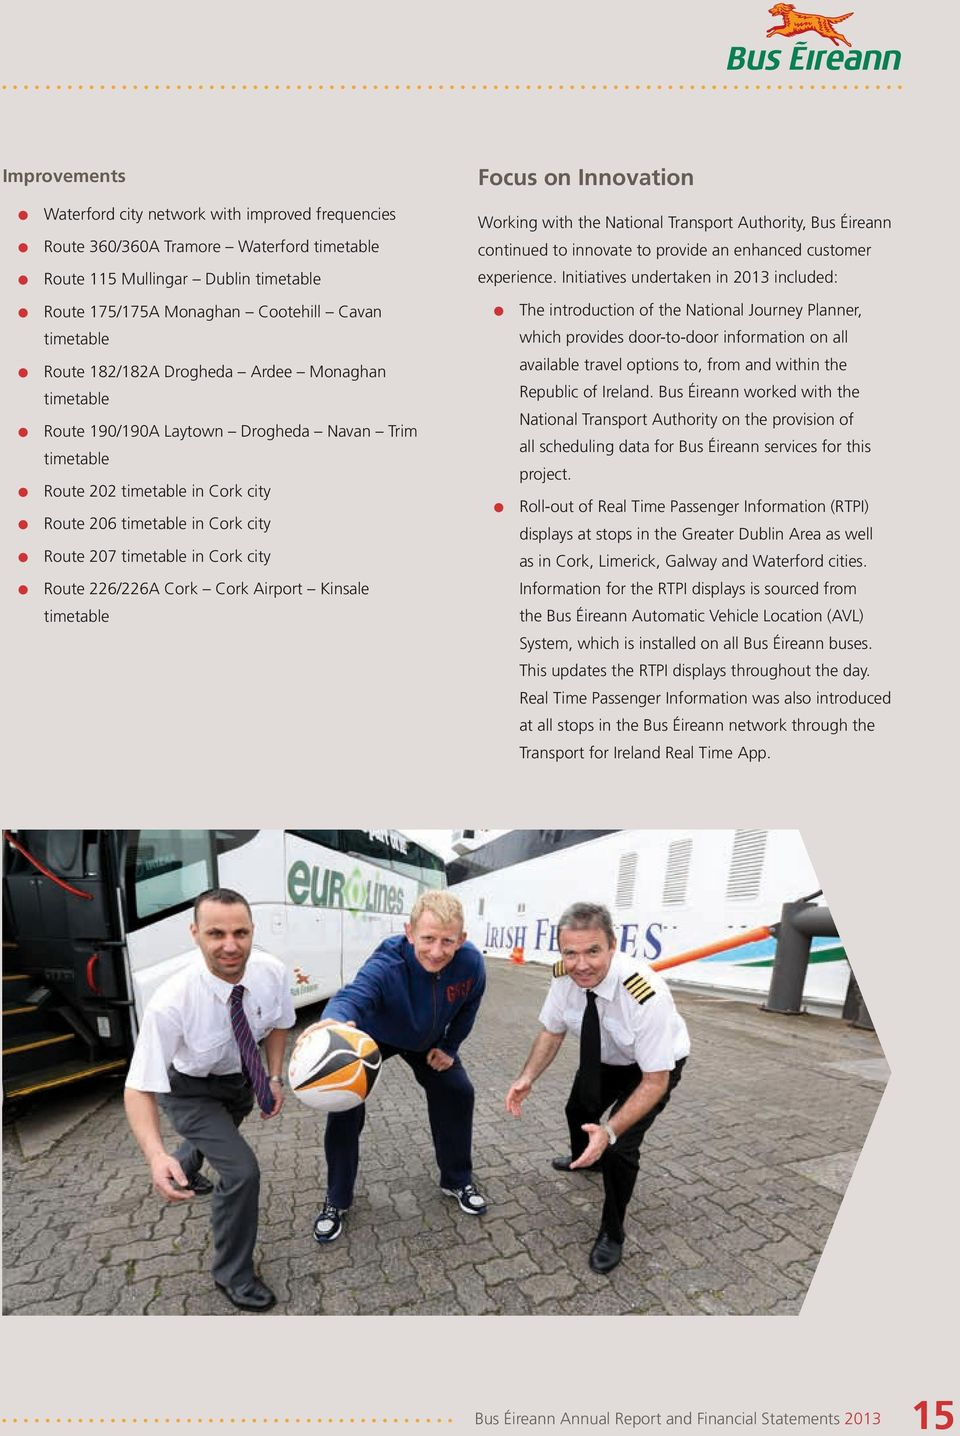 in Cork city l Route 226/226A Cork Cork Airport Kinsale timetable Focus on Innovation Working with the National Transport Authority, Bus Éireann continued to innovate to provide an enhanced customer